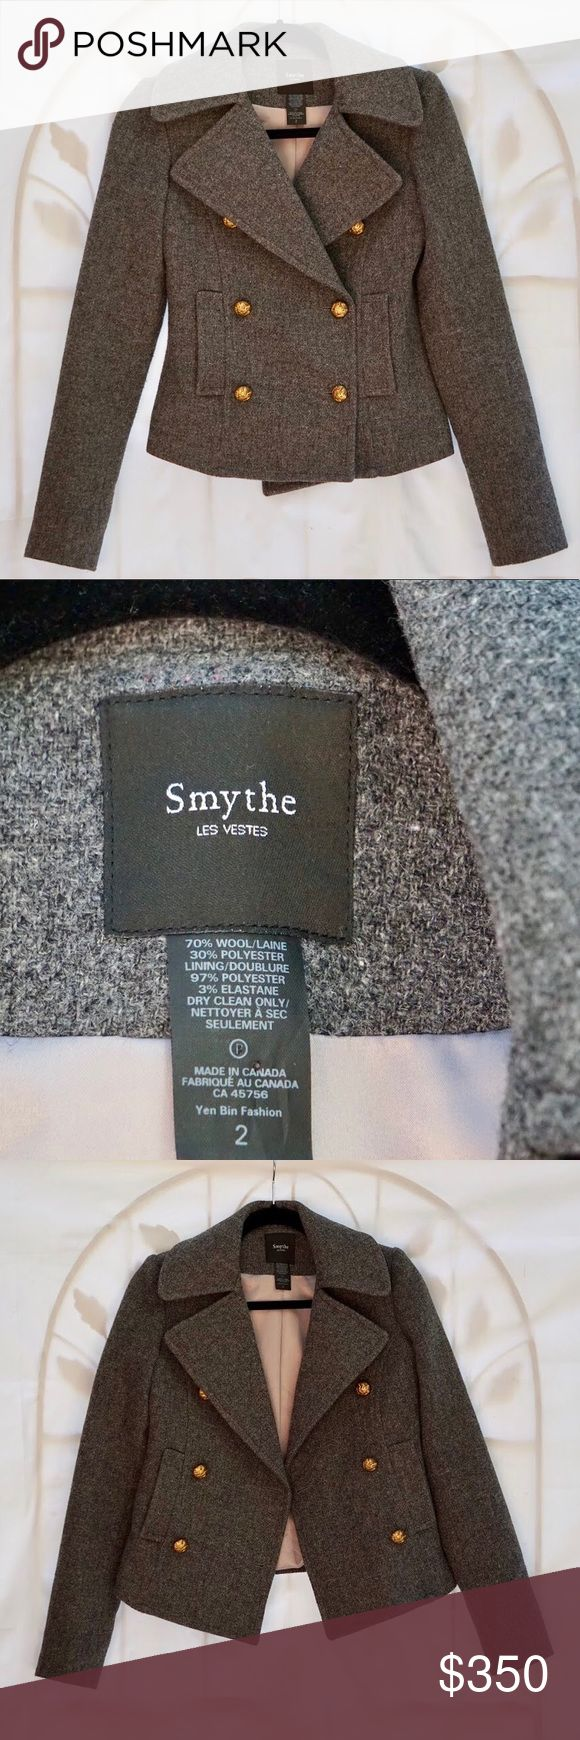 Smythe Les Vestes wool gray jacket pea coat Perfect condition high quality wool pea coat. Only small signs of wear on the buttons - see last photo. Smythe Jackets & Coats Pea Coats